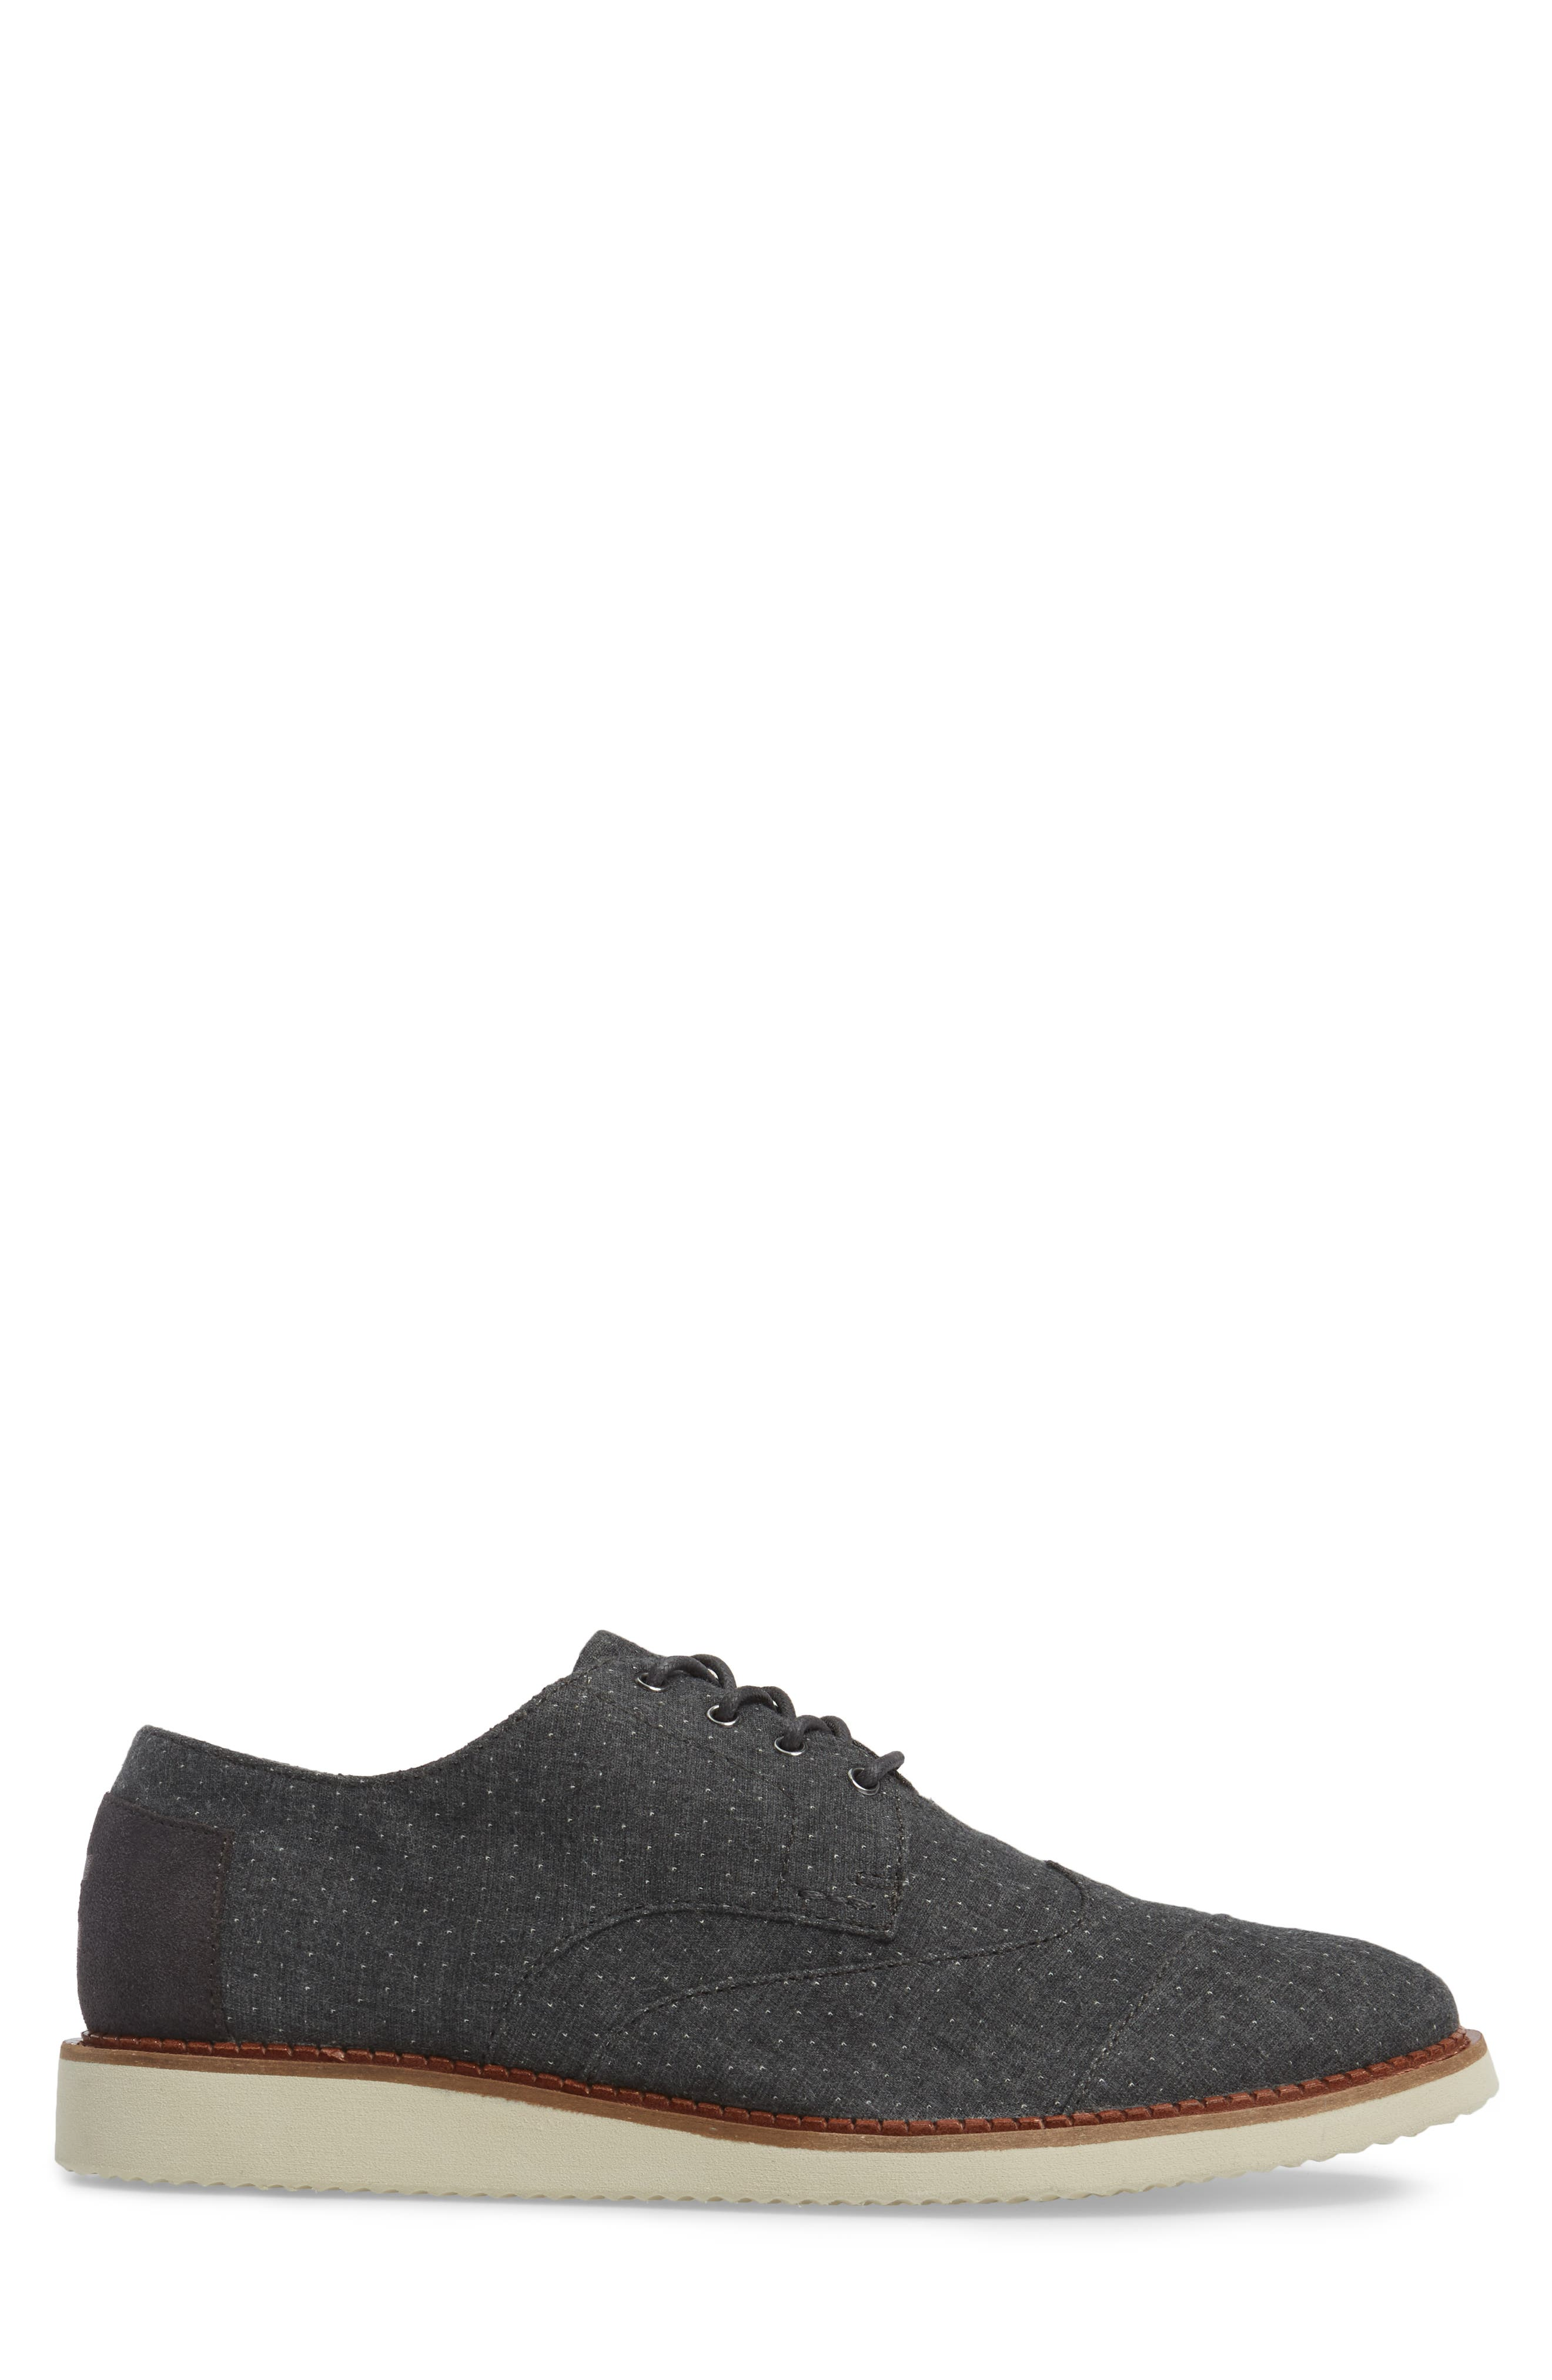 'Classic Brogue' Cotton Twill Derby,                             Alternate thumbnail 37, color,